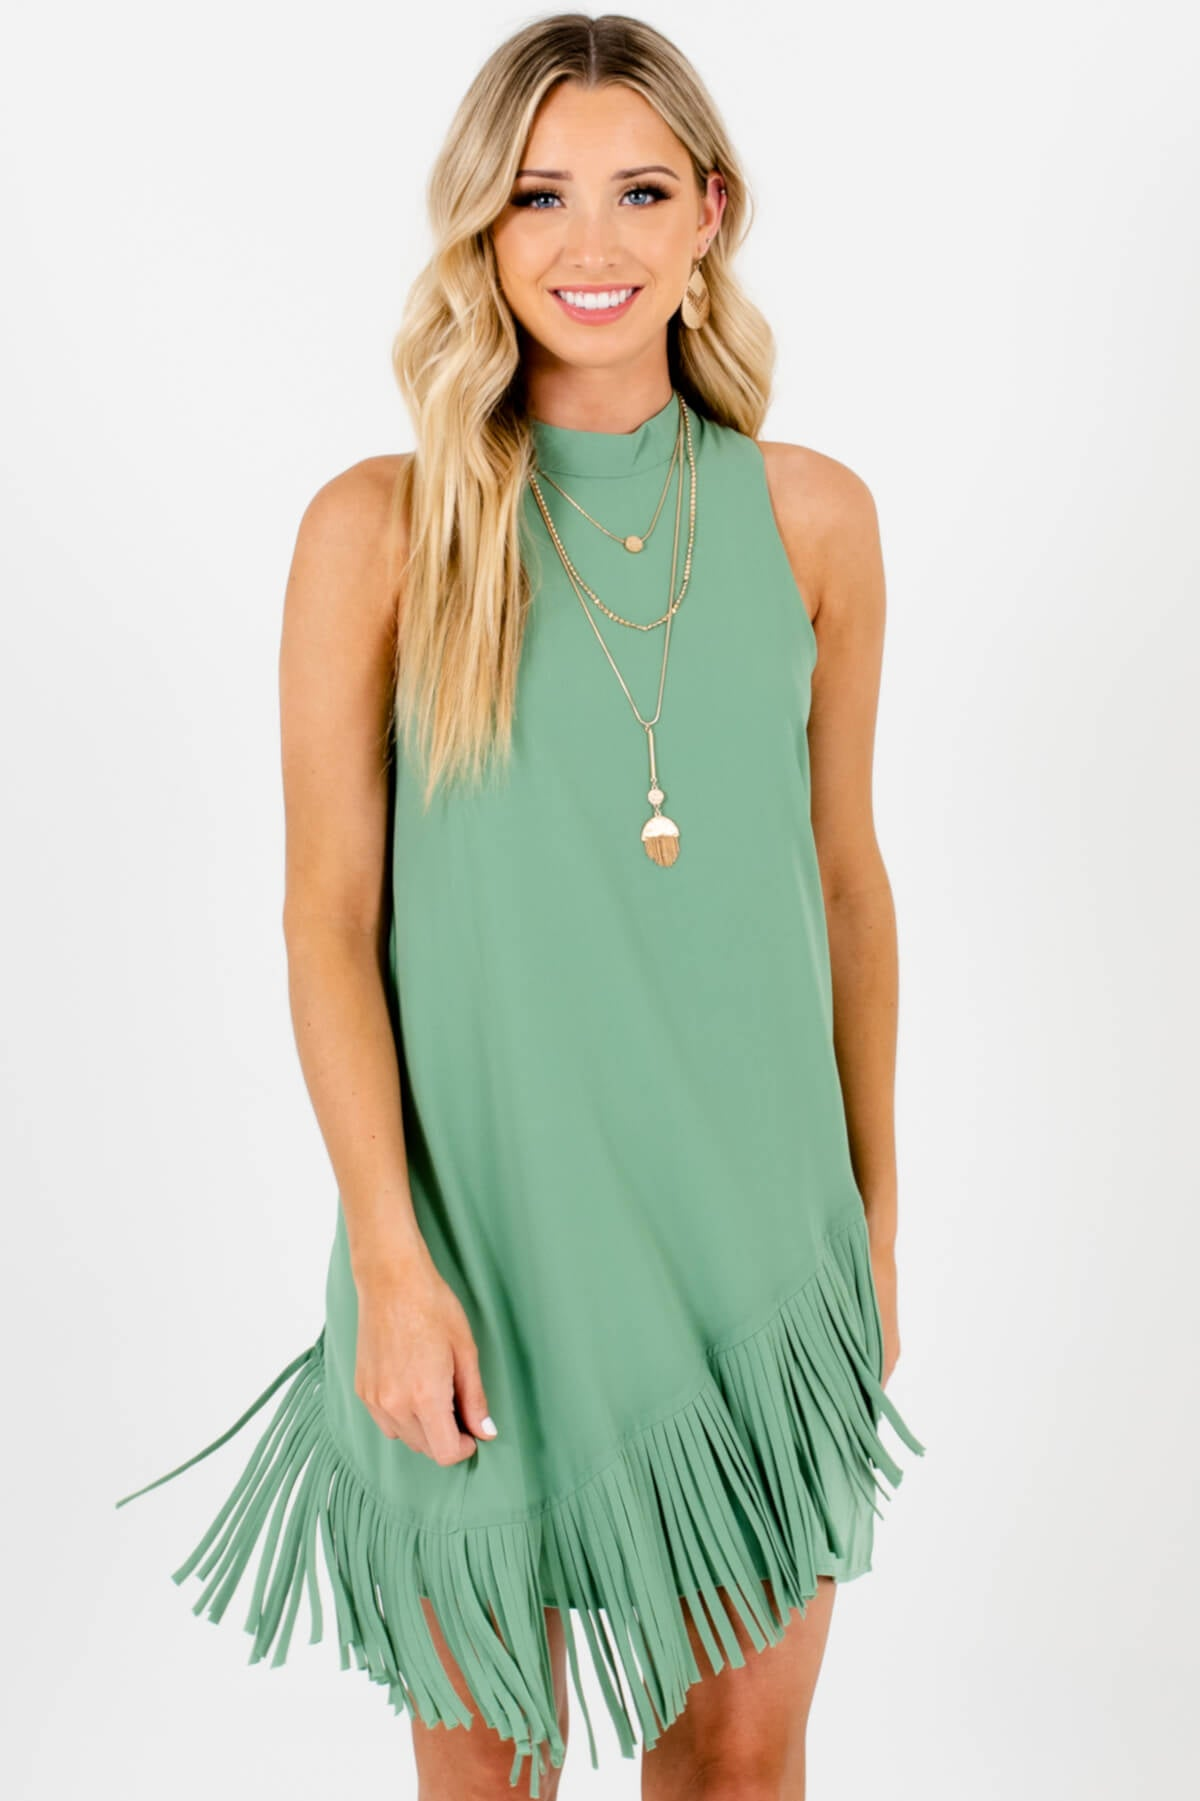 Green Asymmetrical Overlay Fringe Mini Dresses Affordable Online Boutique